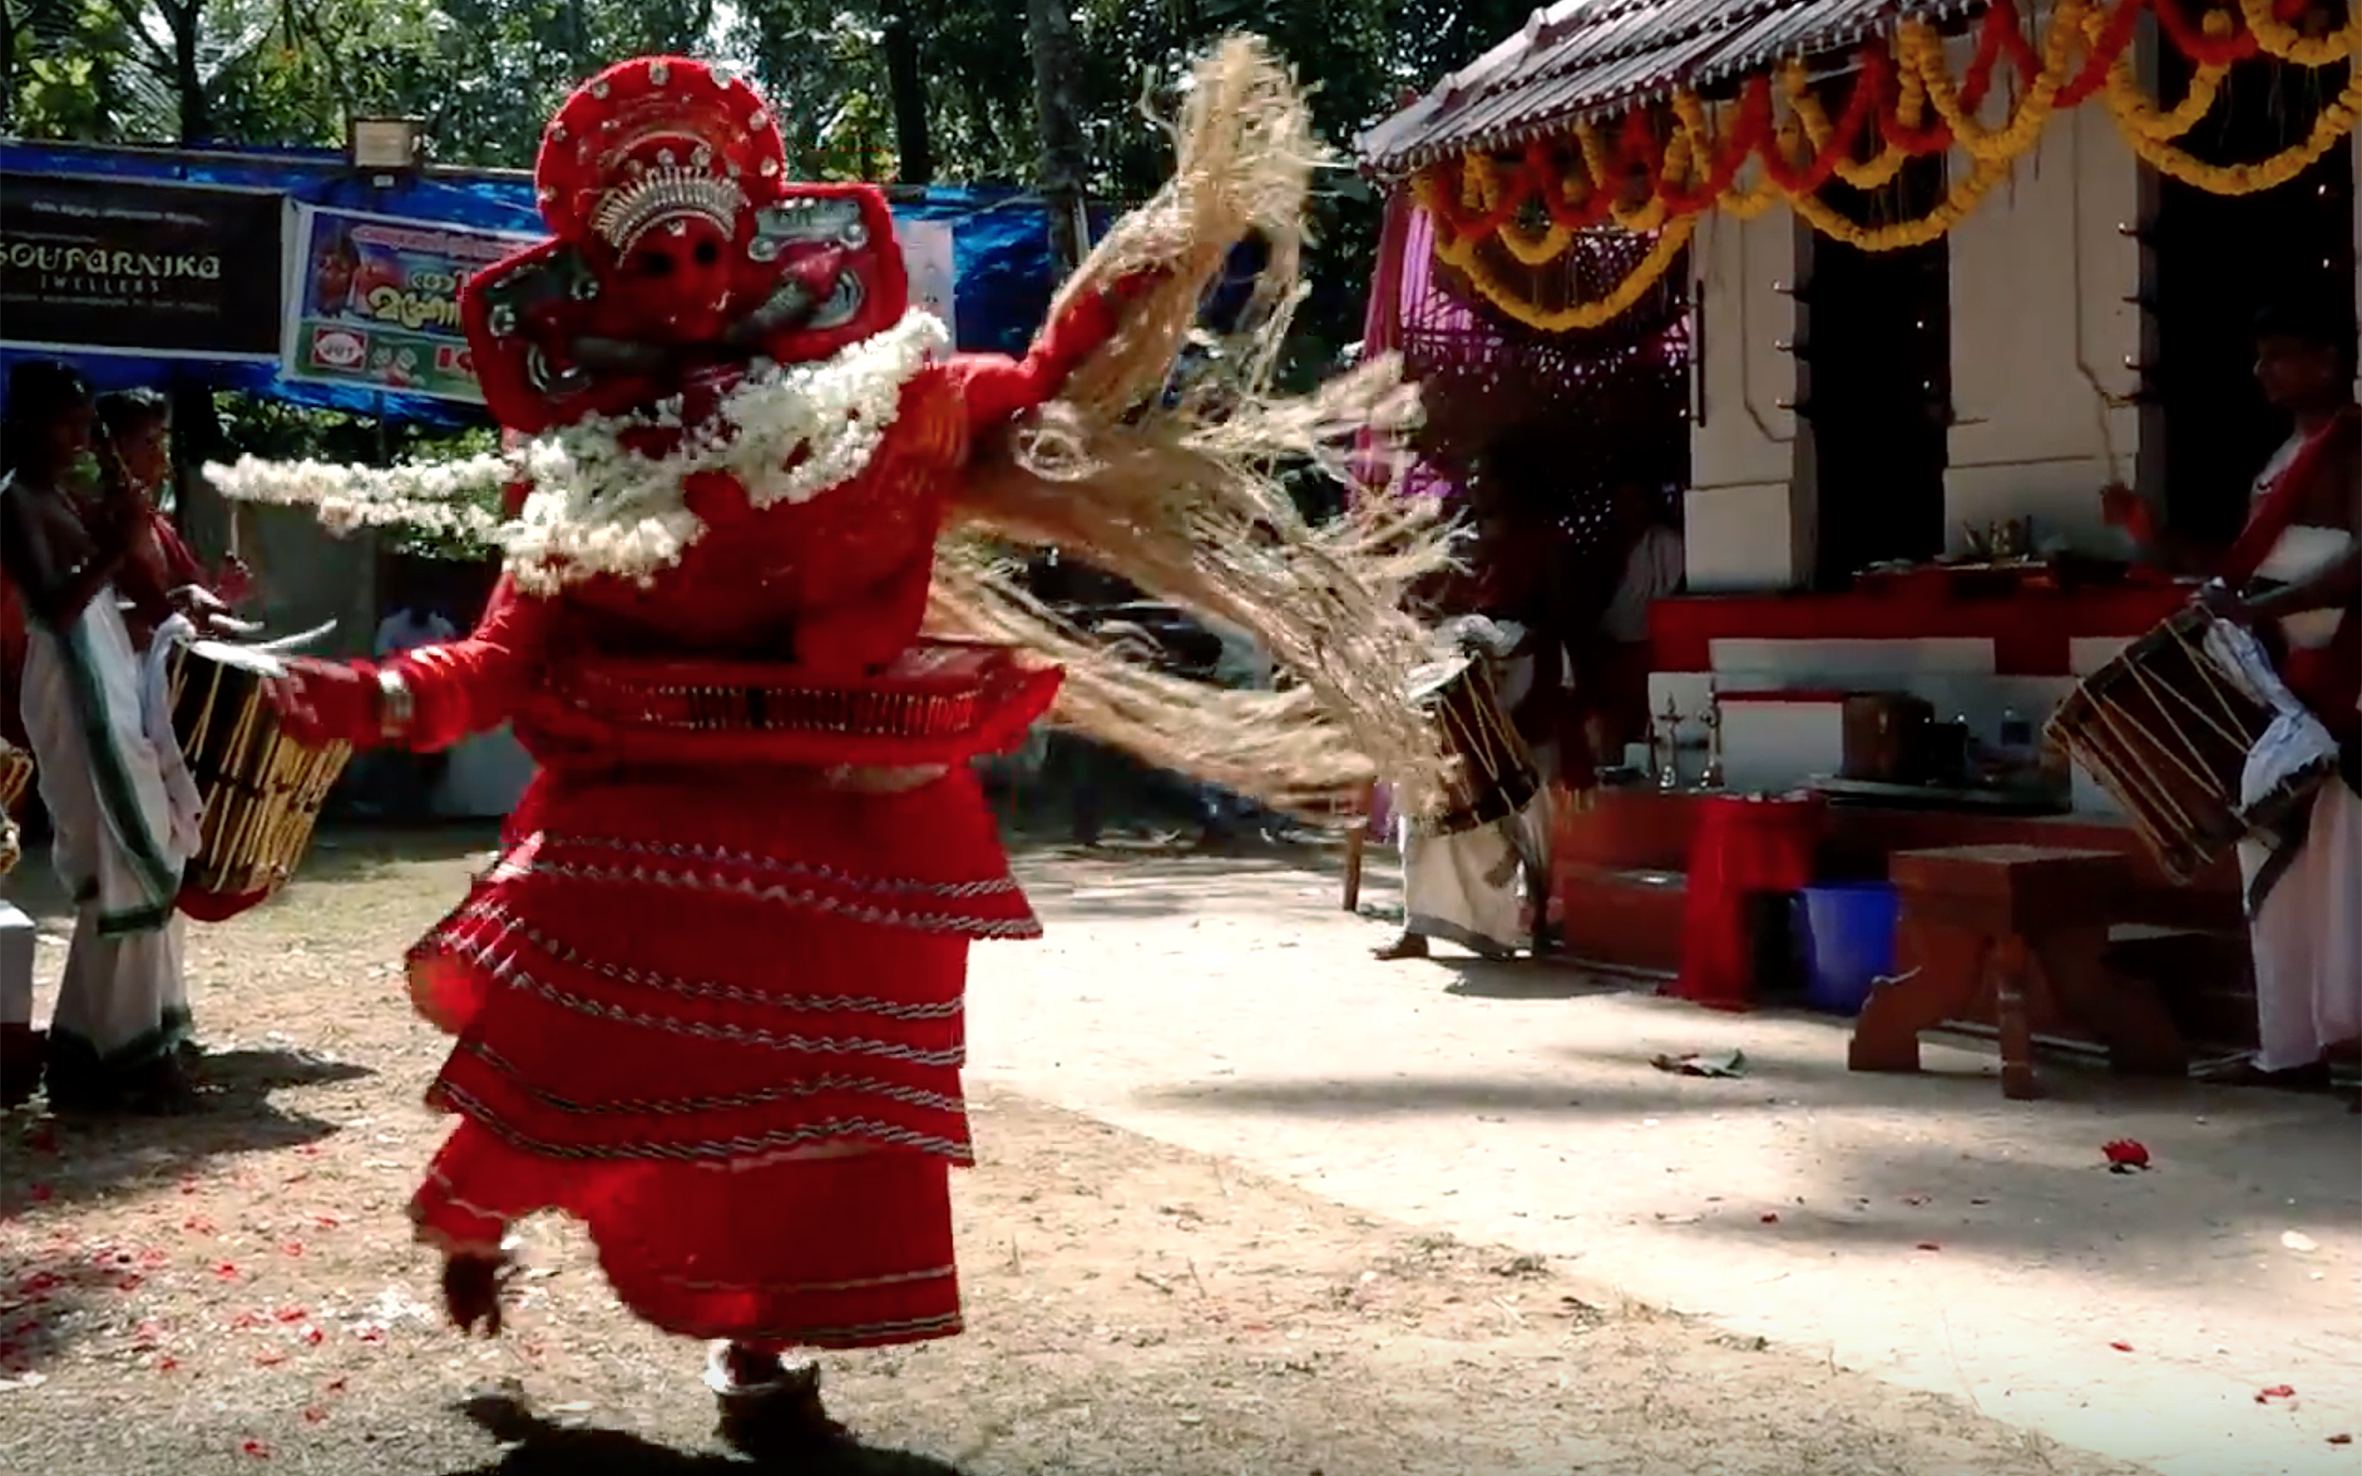 879.THEYYAM / India - THEYYAM is a popular ritual form of worship of northern part of Kerala, India, as a living cult with several thousand-year-old traditions, rituals and customs. It is a combination of ritual, theatrical and lived culture with music and elaborate costuming. Dancer acts possessed with different Hindu, Shaivite and other belief system deities. Performers belong to the lower caste community, and have an important position in Theyyam. People of these districts consider Theyyam itself as a God and they seek blessings from this Theyyam. The dance is generally performed in front of the village shrine. It is also performed in the houses as ancestor-worship. It is accompanied by the chorus of such musical instruments. There are over 400 separate Theyyams, each with their own music, style and choreography.